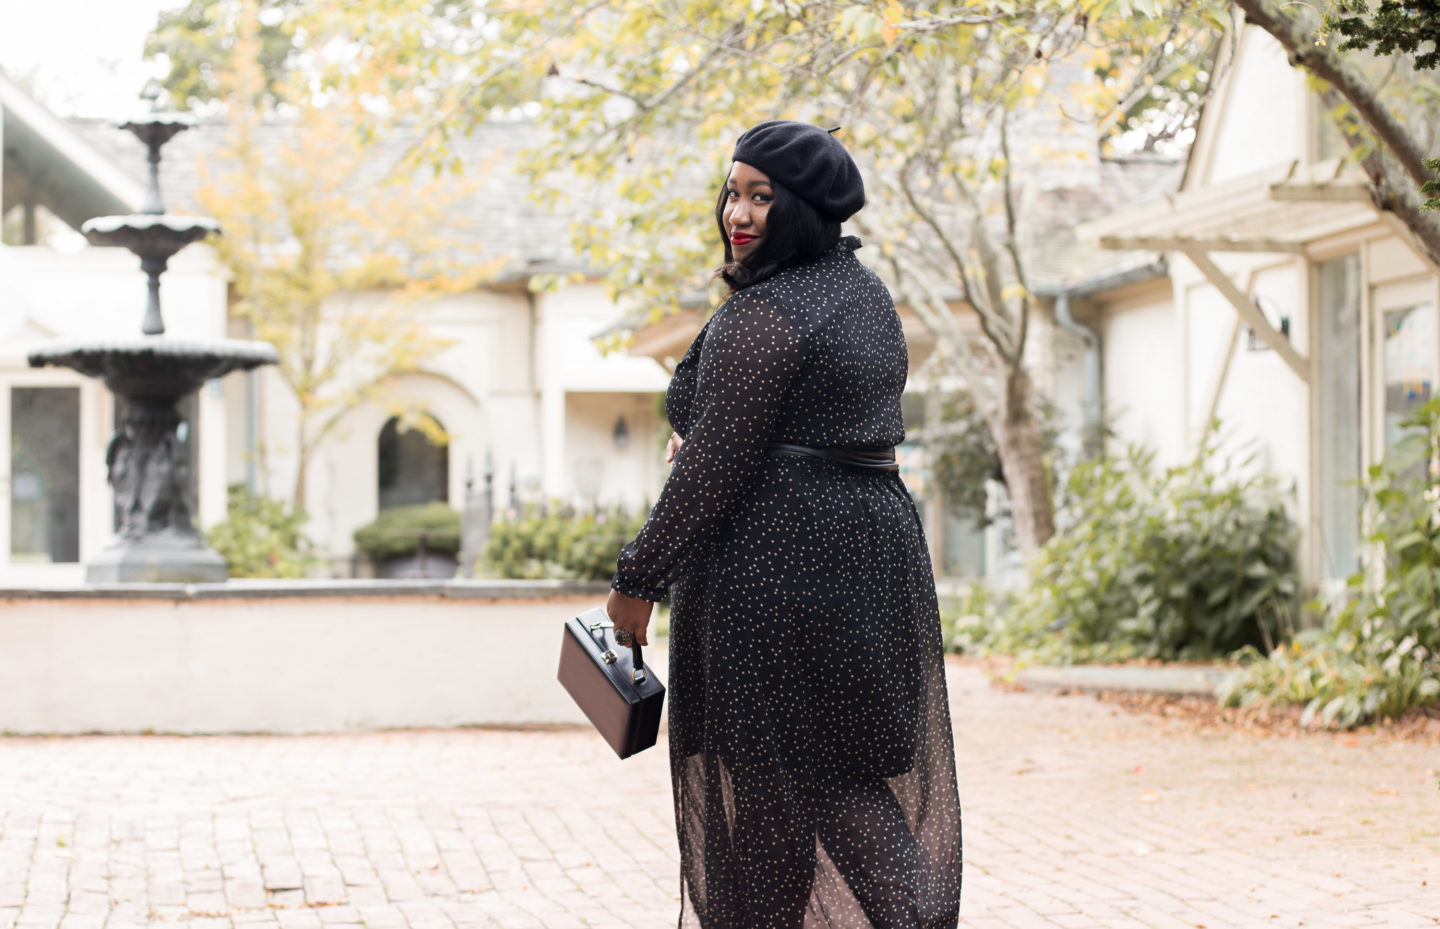 d432231c57 Plus Size Fall Outfit Ideas - Shapely Chic Sheri - Plus Size Fashion Blog  for Curvy Women